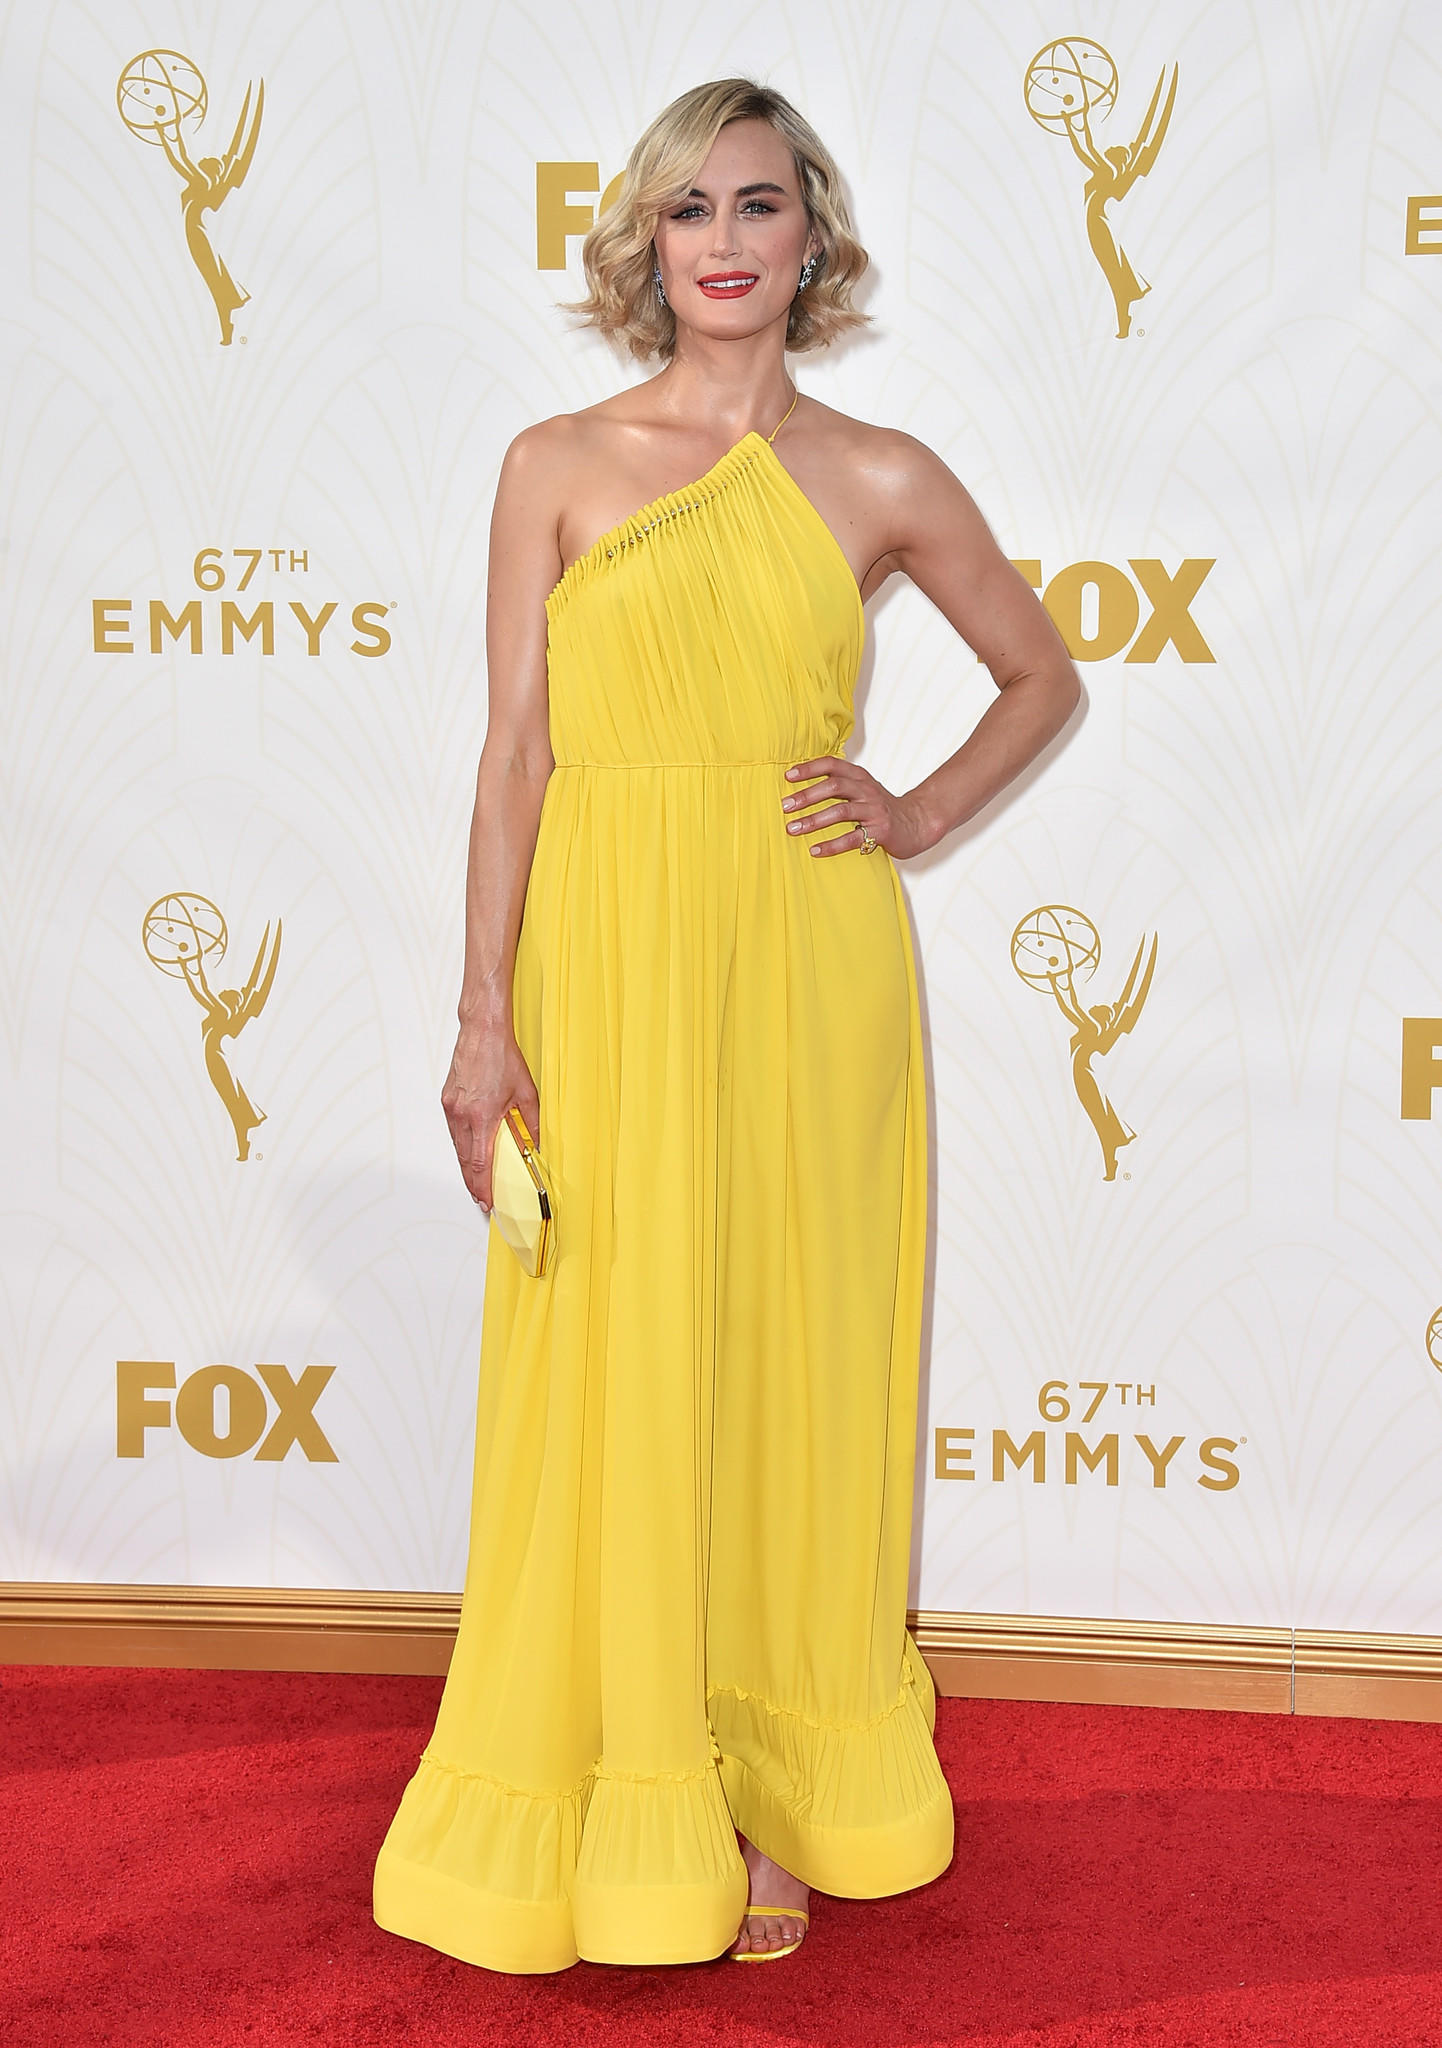 Taylor Schilling arrives at the 67th Primetime Emmy Awards (Jordan Strauss / Jordan Strauss/Invision/AP)